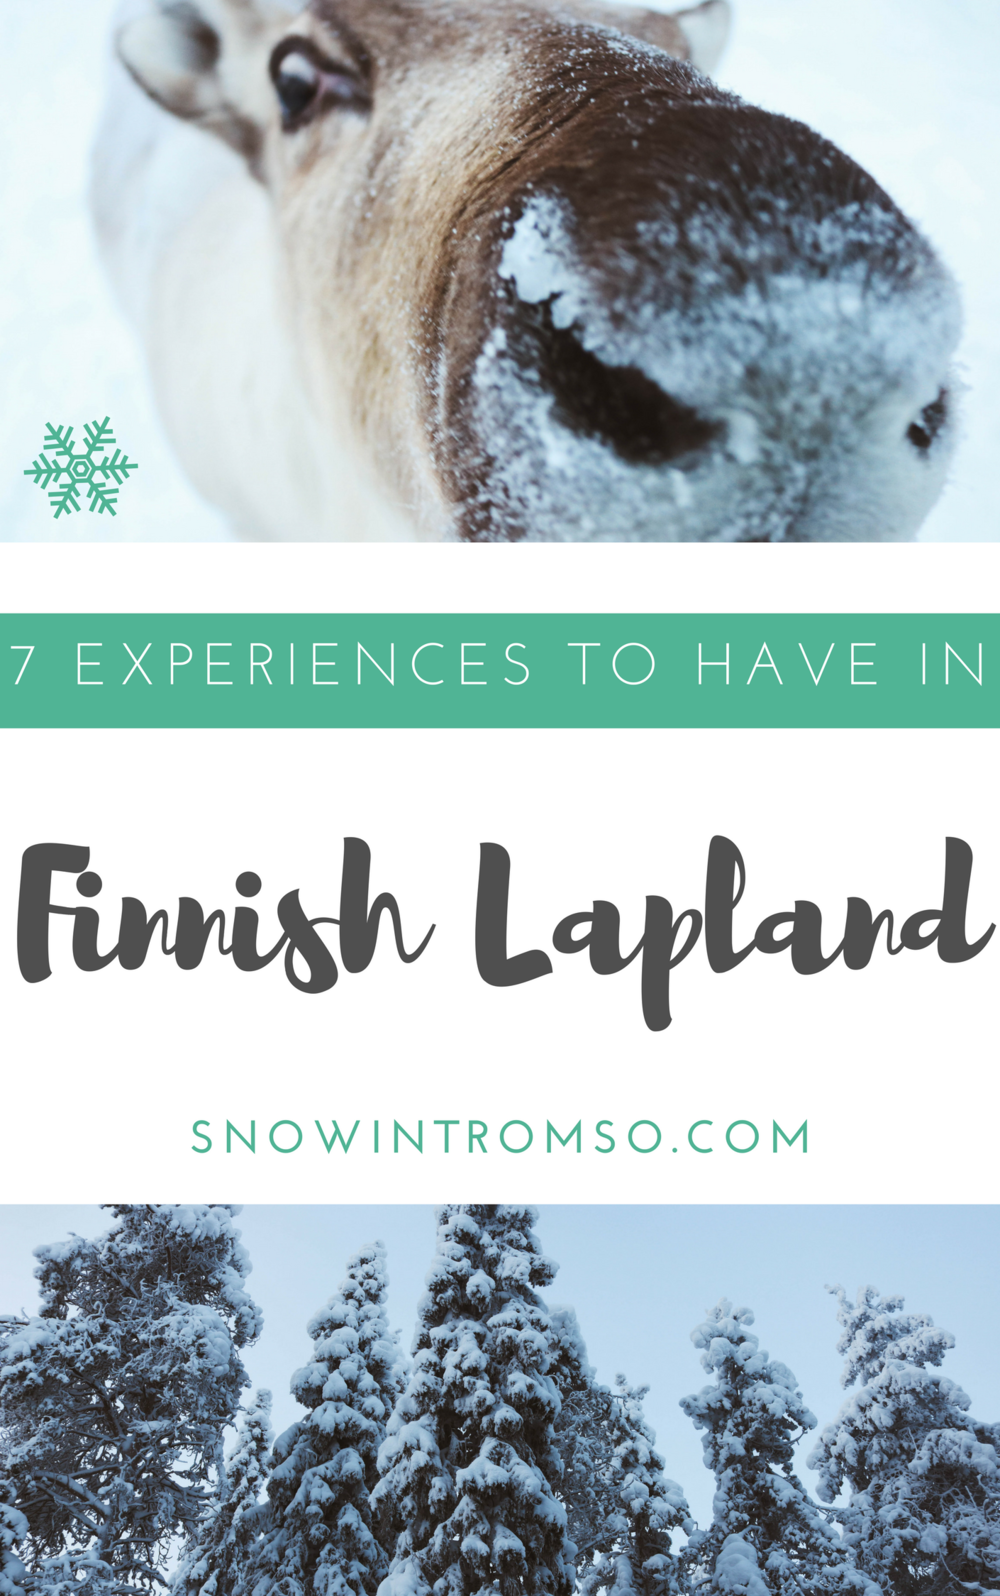 Considering a trip to Finnish Lapland? Here are 7 experiences you should have in Ruka-Kuusamo!